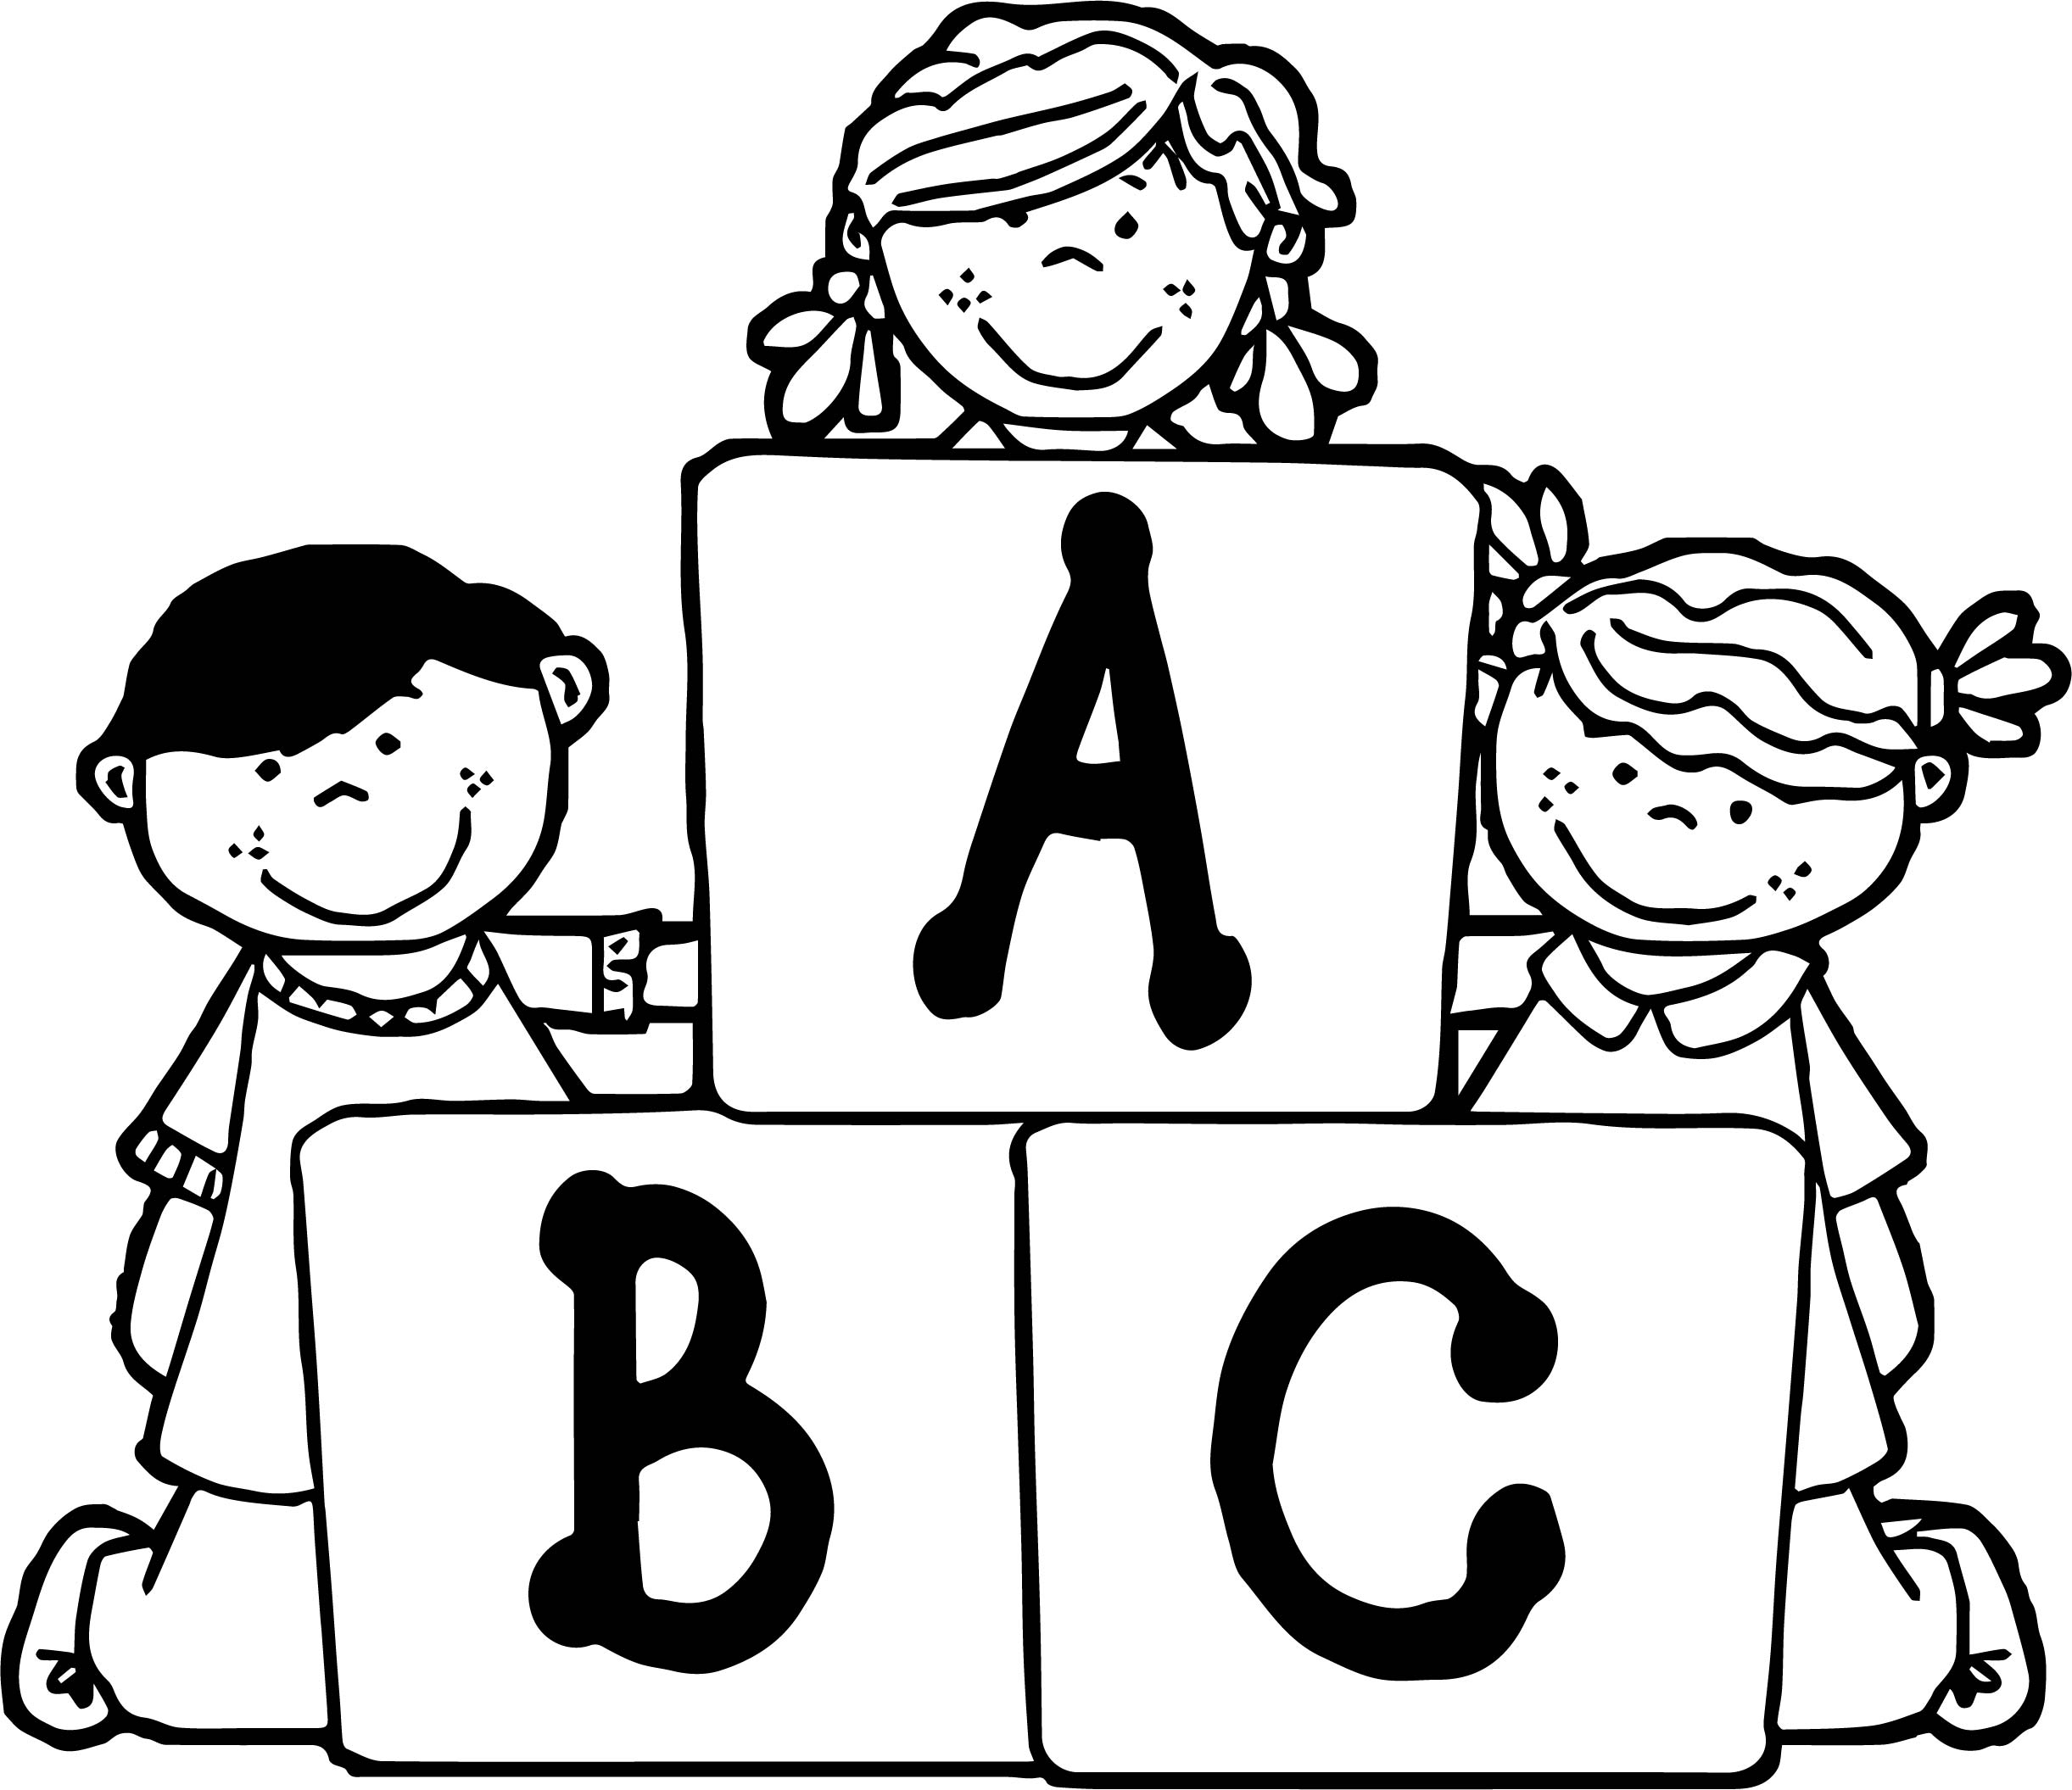 Abcs Of Pictures Coloring Pages